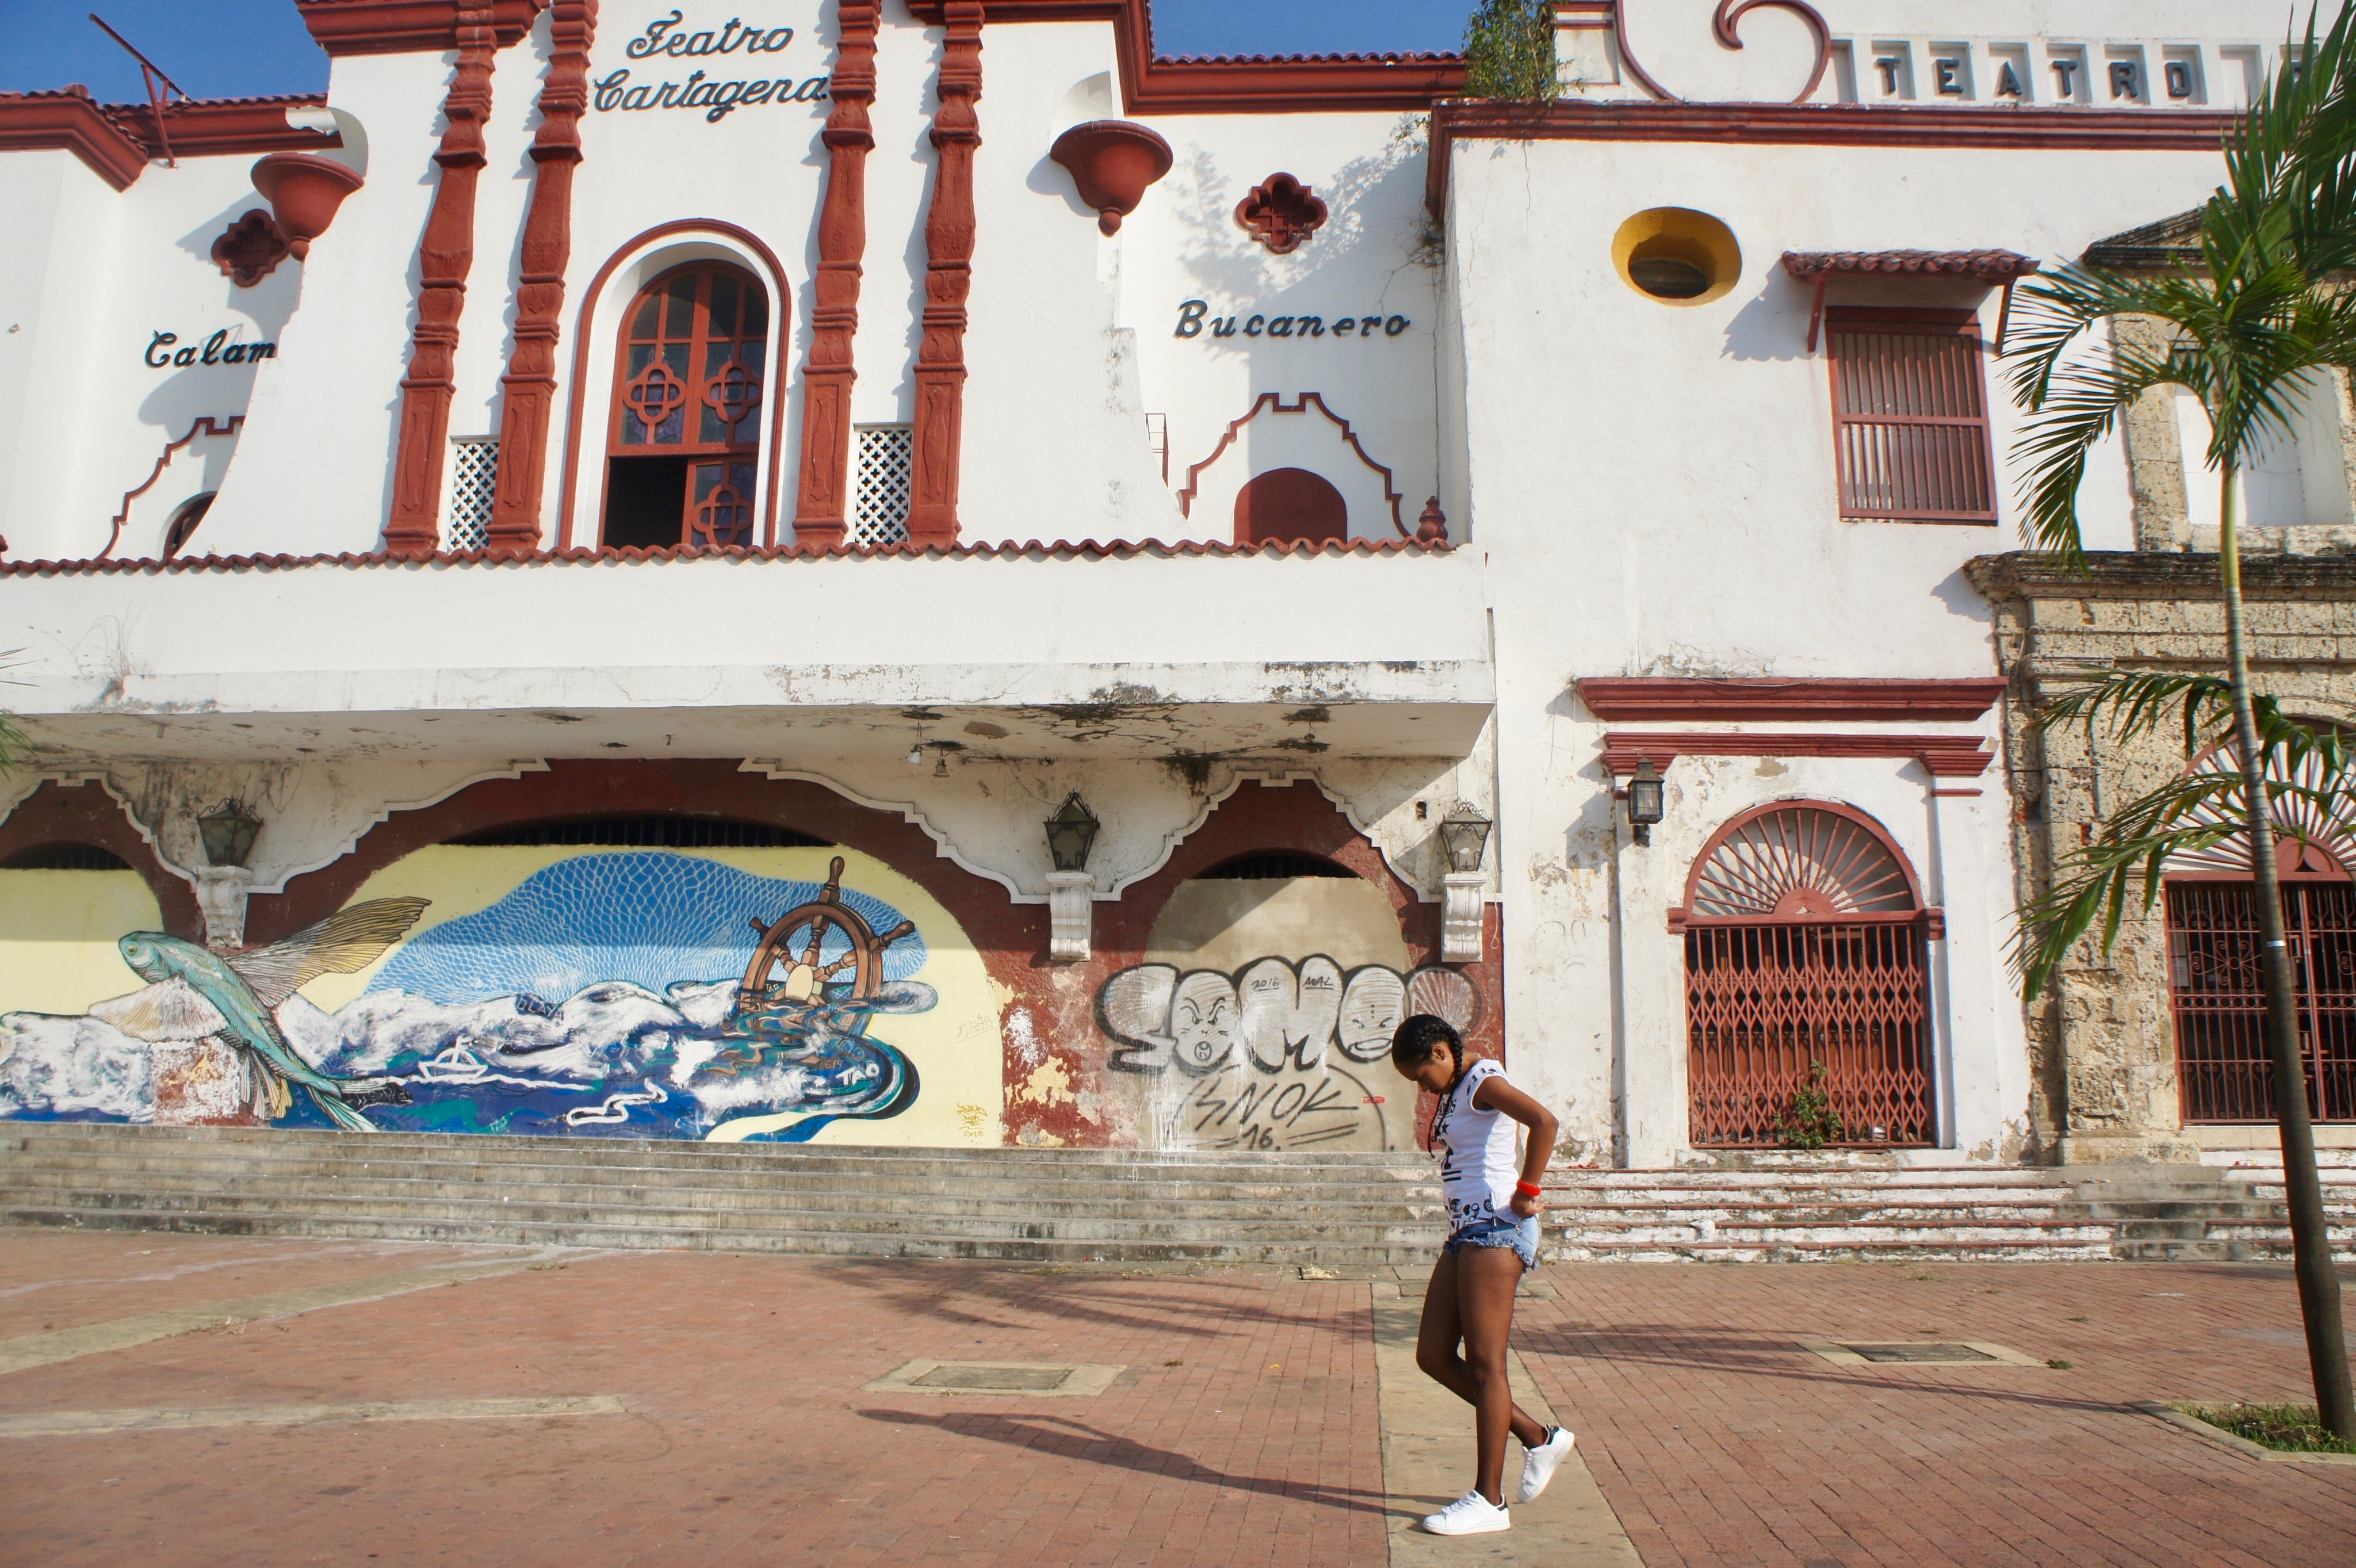 Cartagena de Indias, a Carribean town surrounded with walls